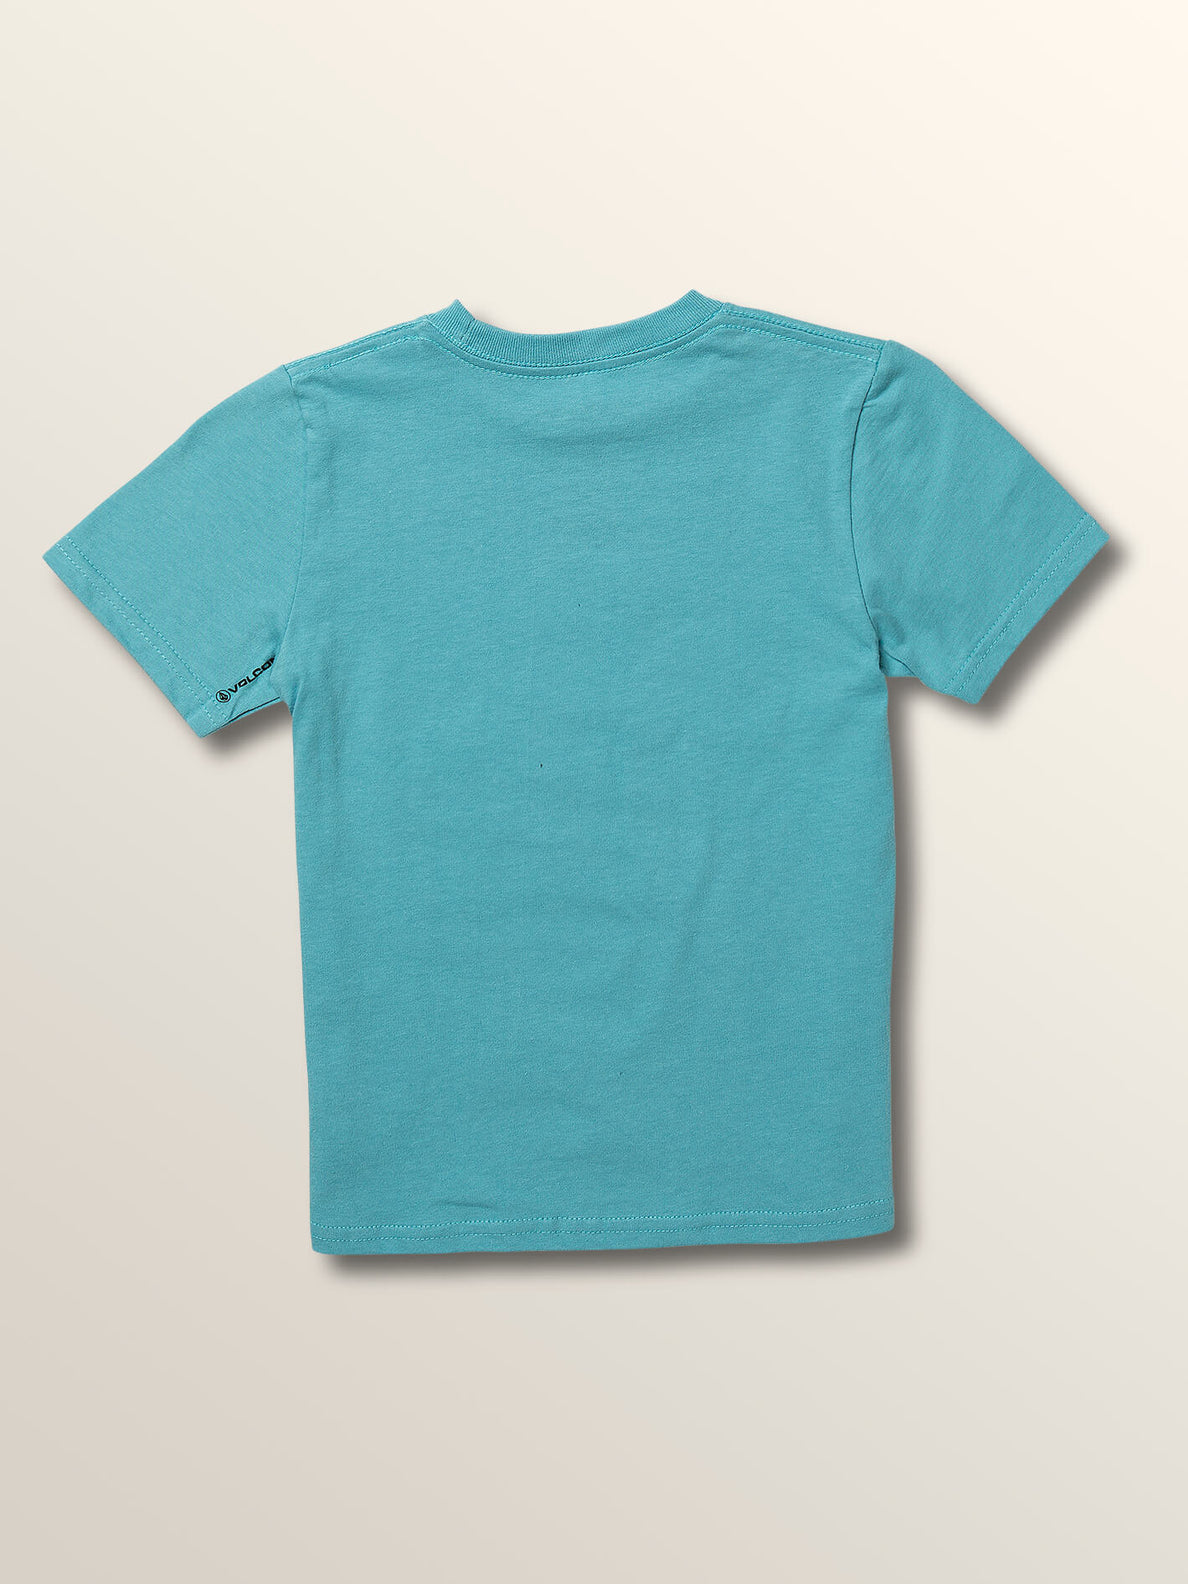 Little Boys Sound Waves Short Sleeve Tee In Blue Bird, Back View